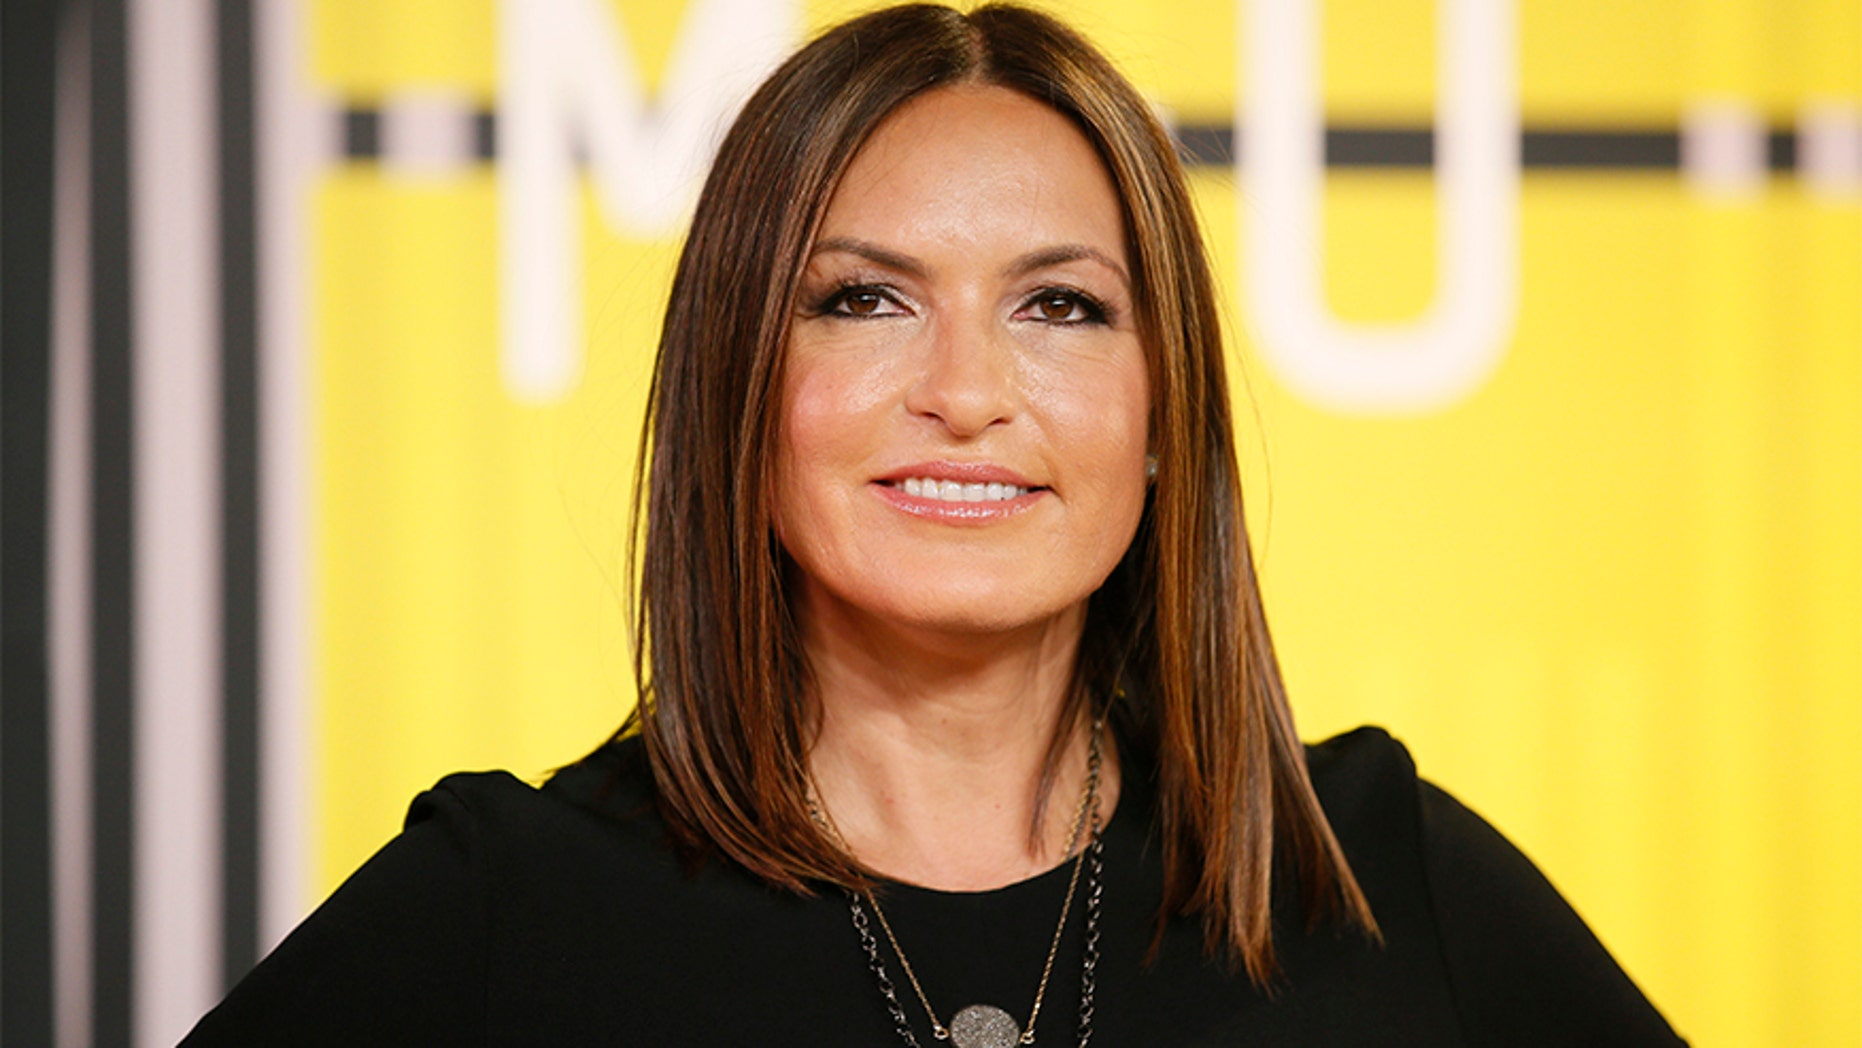 Actress Mariska Hargitay arrives at the 2015 MTV Video Music Awards in Los Angeles, California, August 30, 2015.  REUTERS/Danny Moloshok - RTX1QBZX